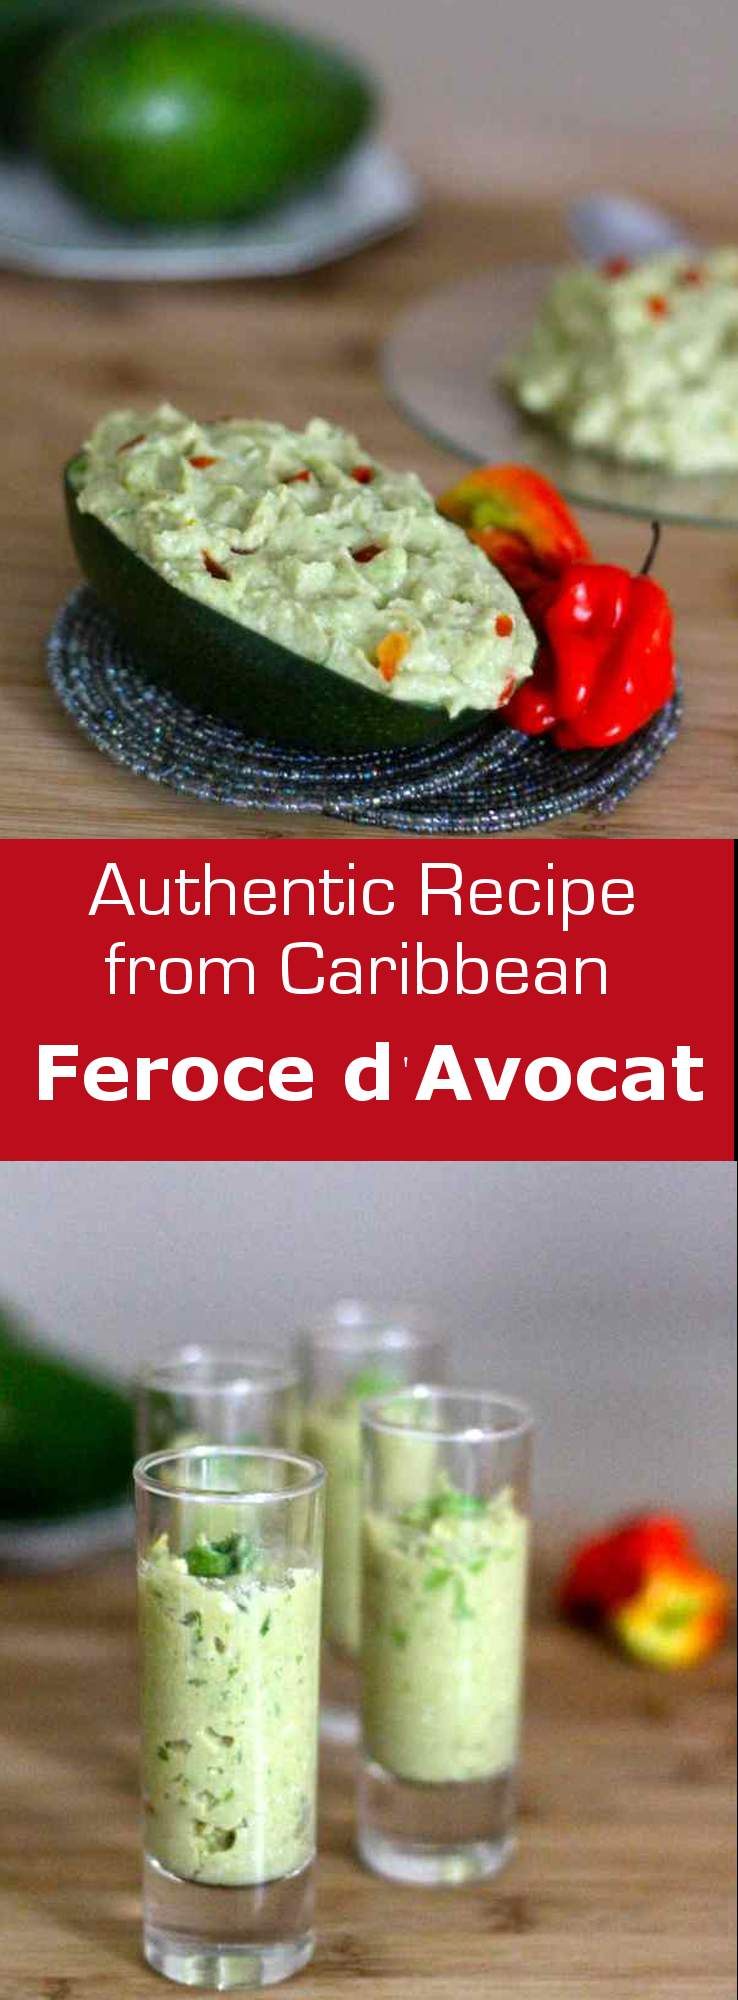 Feroce d'Avocat is a traditional French West Indian specialty made from salt cod, avocado and cassava. #caribbean #appetizer #westindies #glutenfree